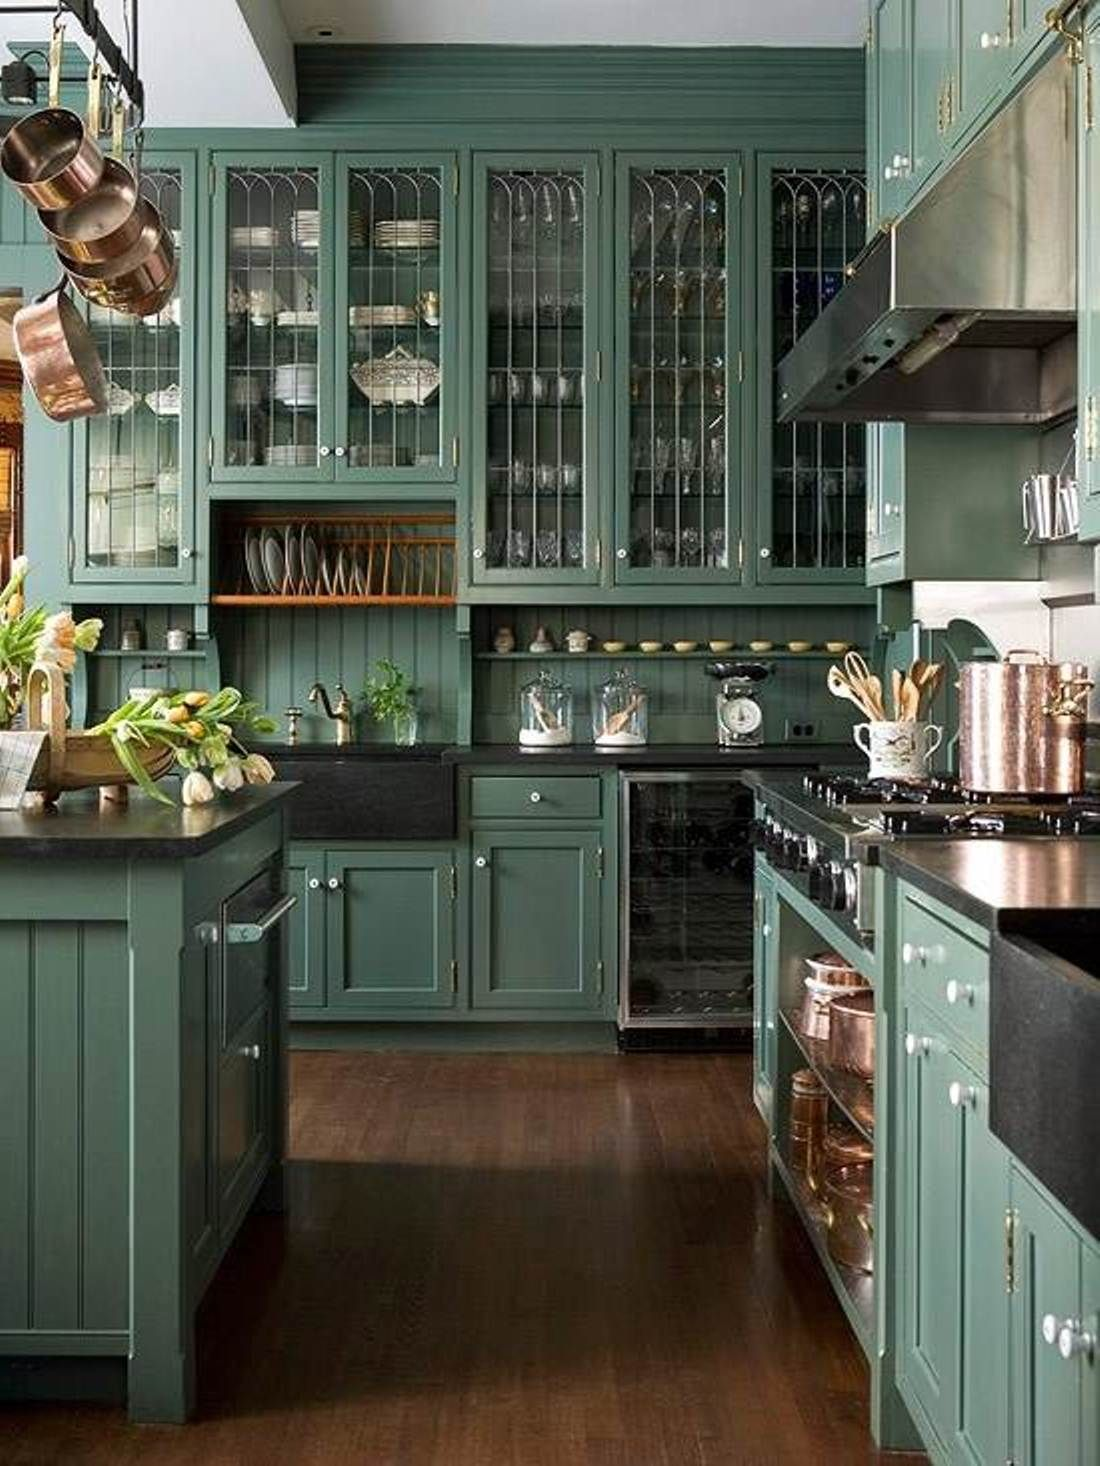 victorian style kitchens some of these elements are overwhelming victorian style kitchens some of these elements are overwhelming but i like the ceiling